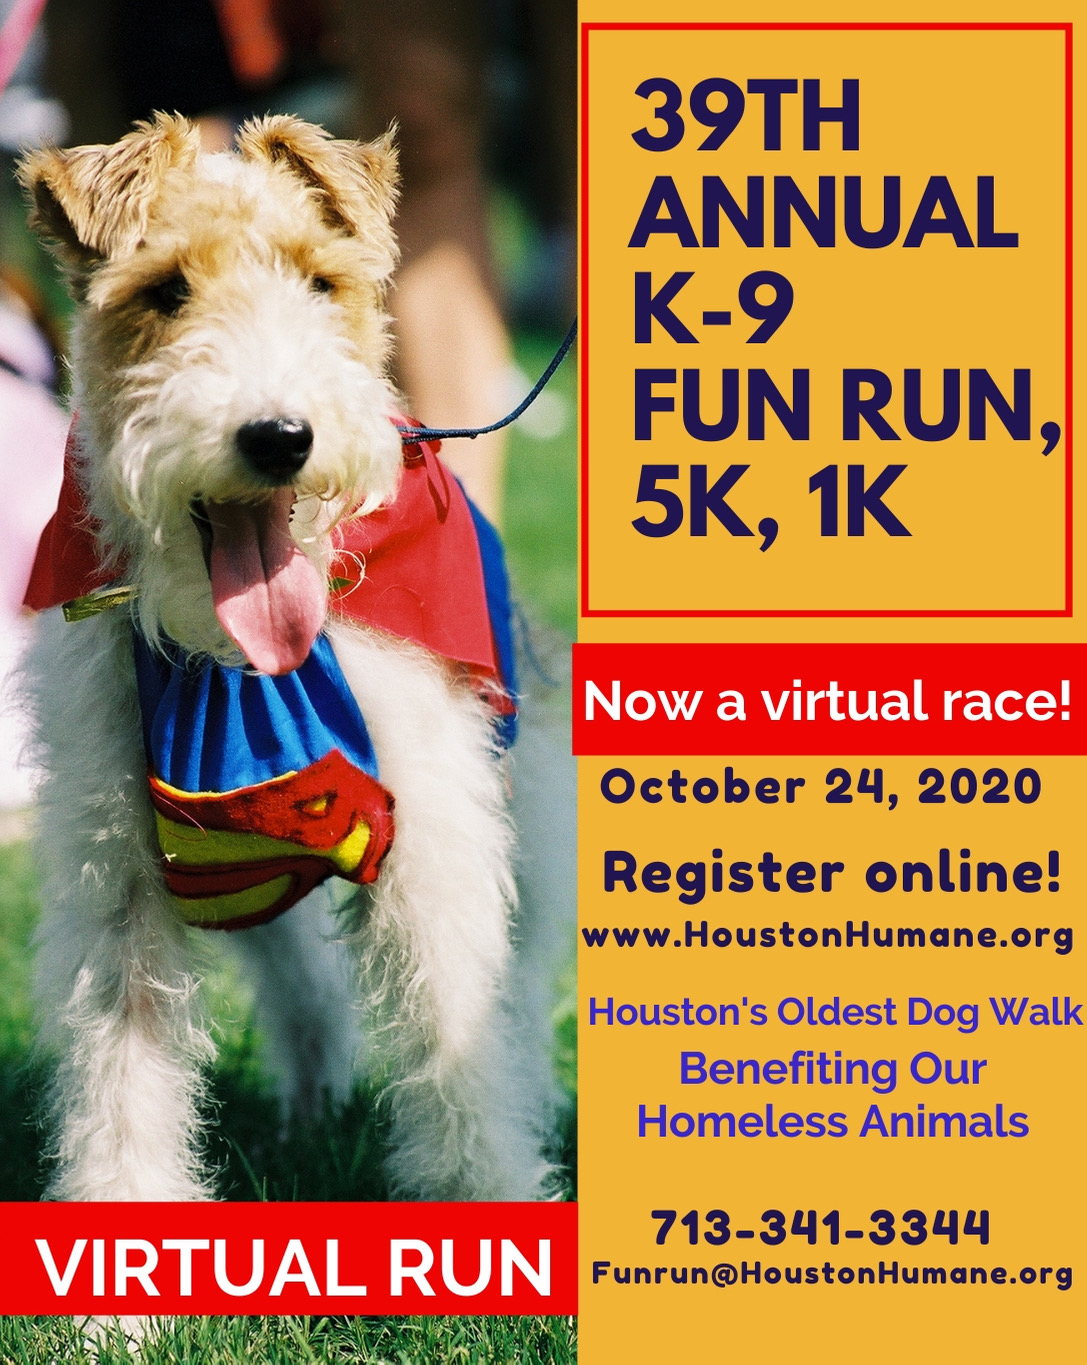 HHS Fun Run And Walk Goes Virtual In October